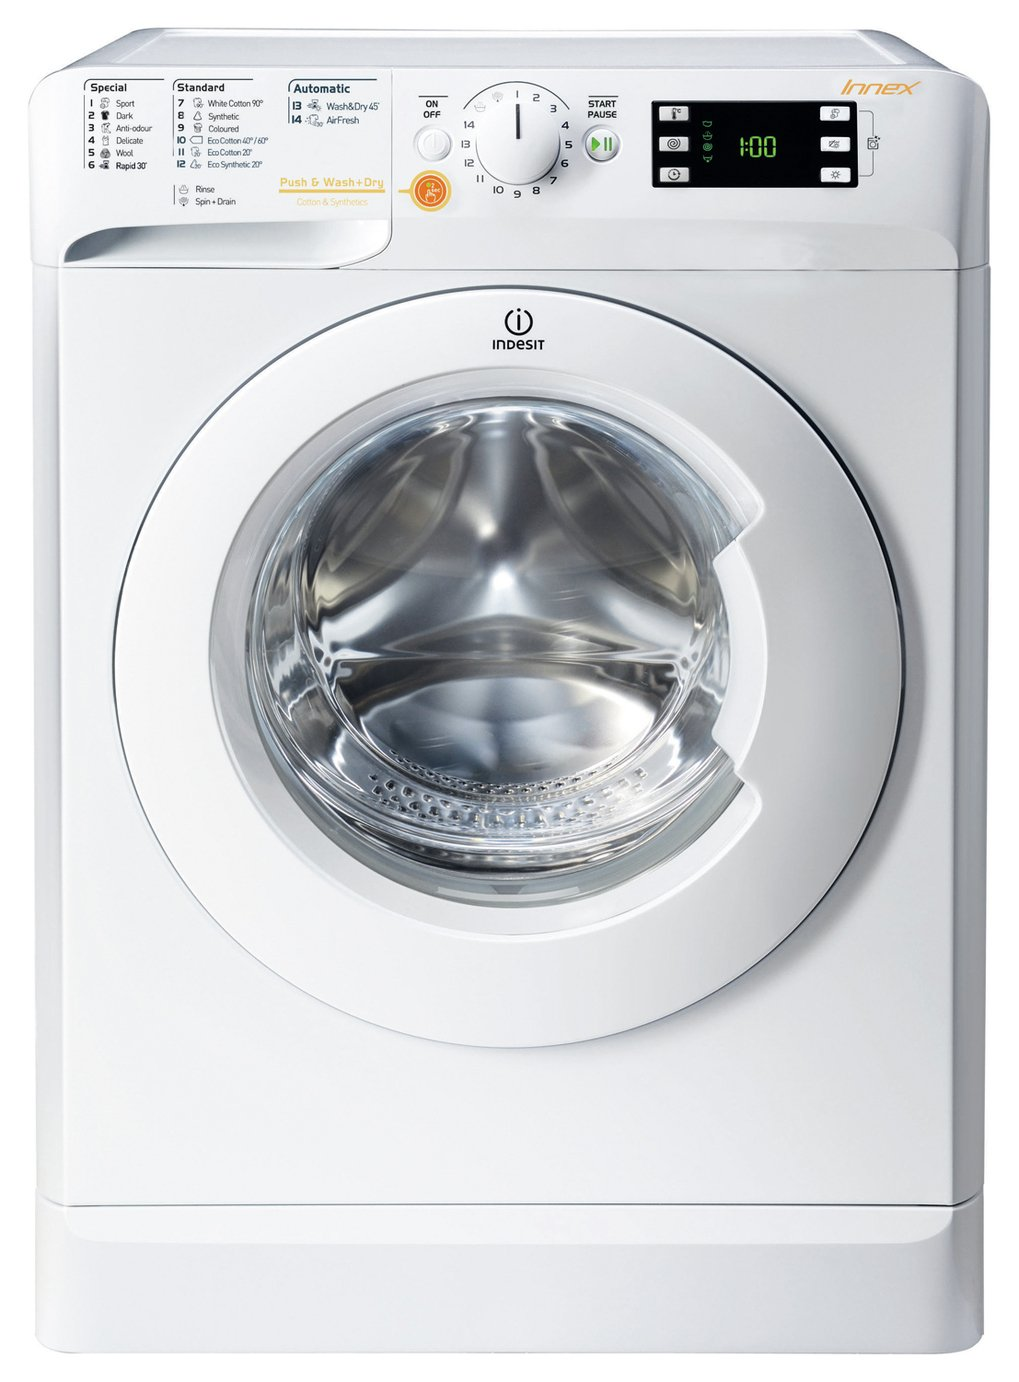 Indesit XWDE961680X 9/6kg 1600 Washer Dryer - White